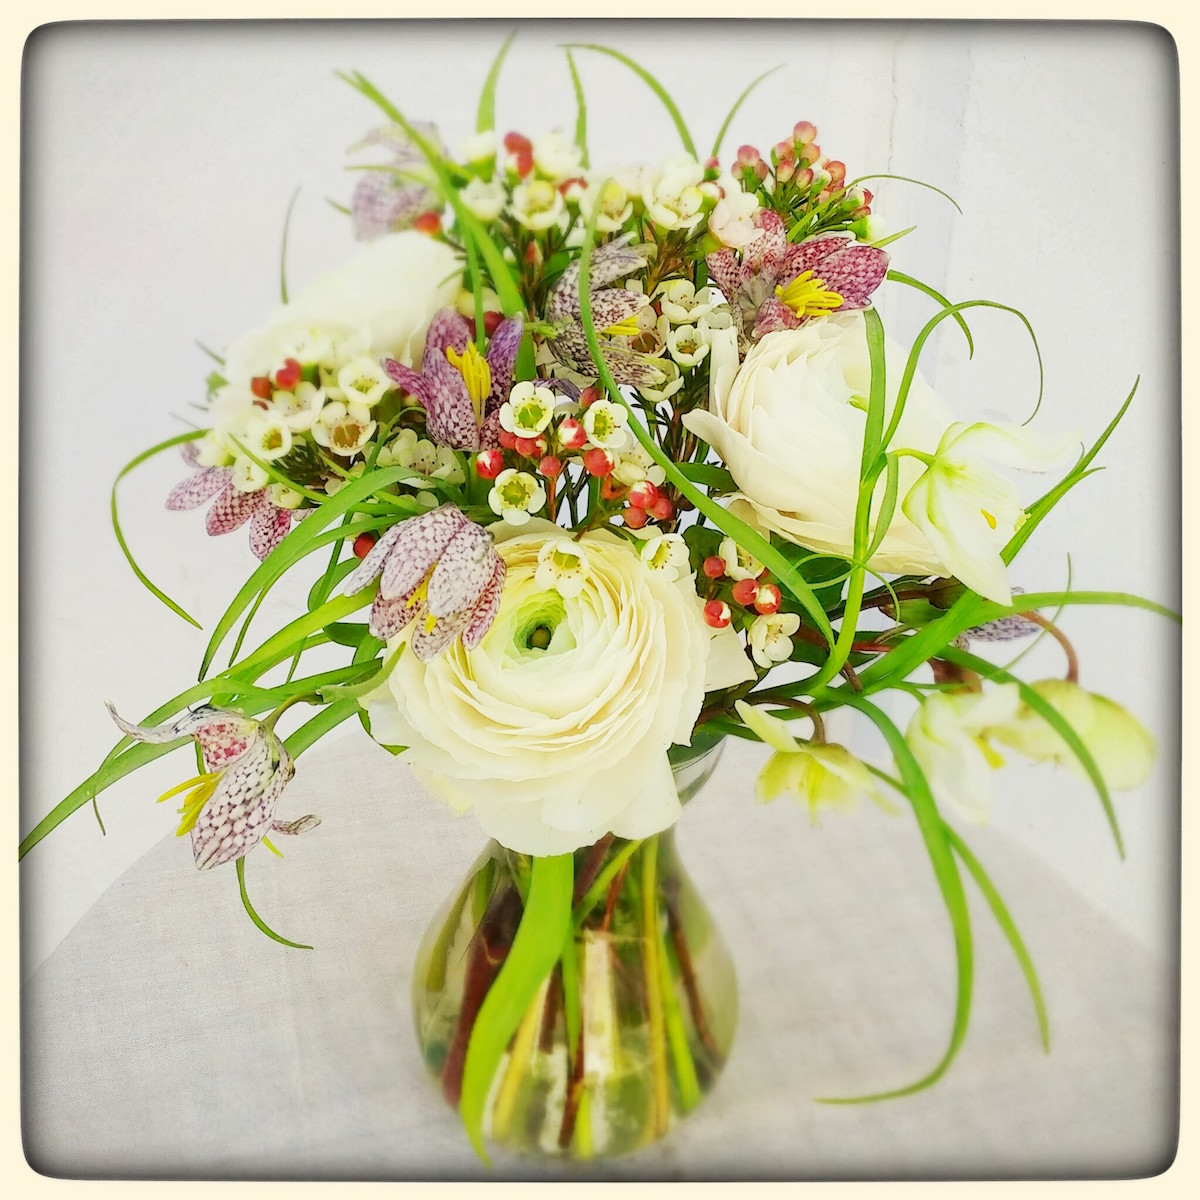 March 2016 newsletter flowerduet spring fritillaria stems and ranunculus make an impact in a small bud vase flowers by flower duet photo by kit wertz reviewsmspy